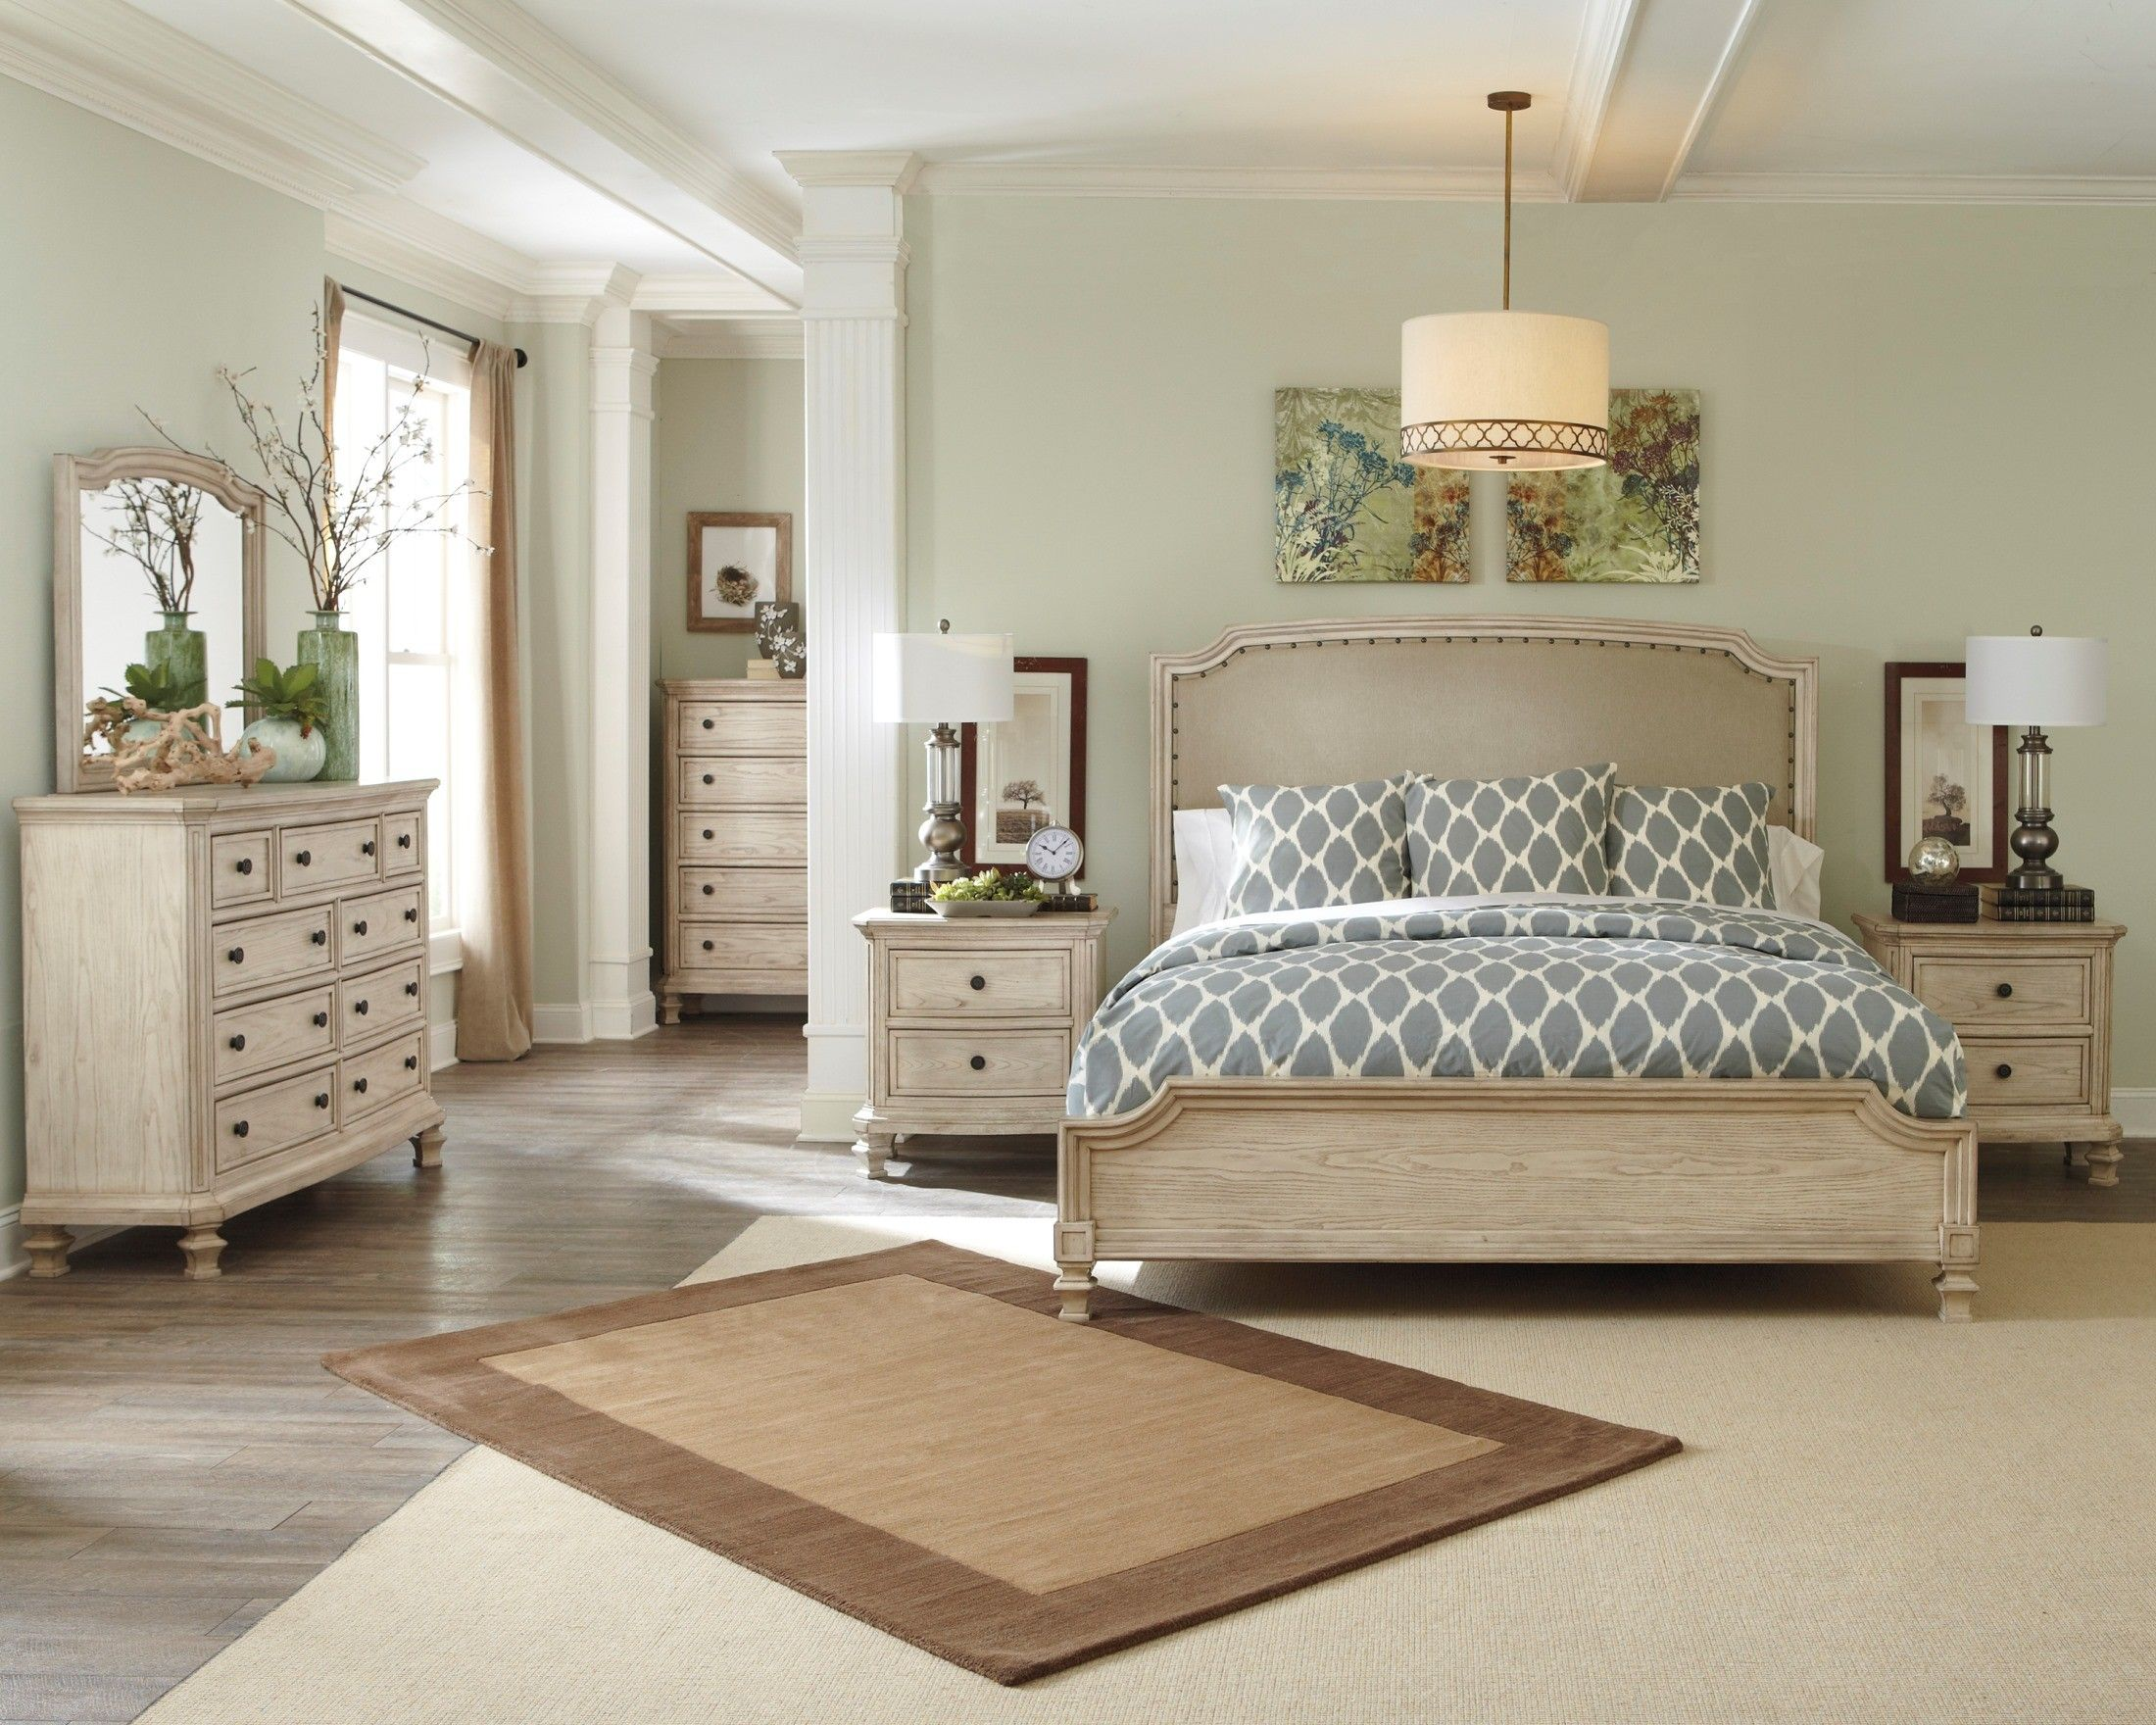 Ashley white bedroom furniture - Demarlos Asl B693 78 76 97 Ashley Furniture Also Comes